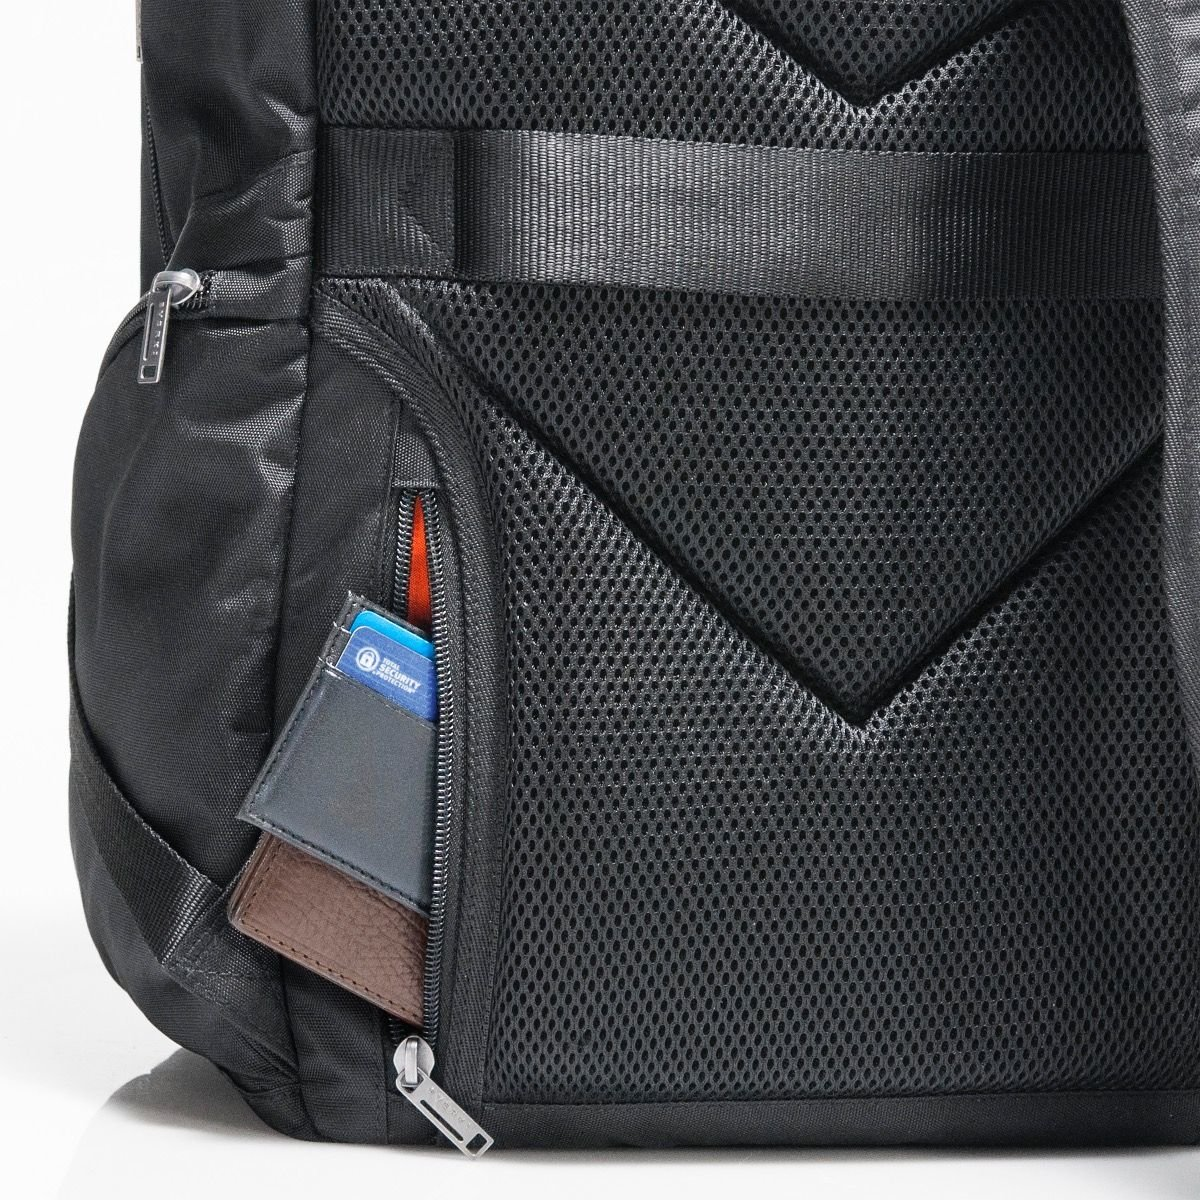 "Рюкзак для ноутбука 15.6"" Everki Advance Laptop Backpack Black"